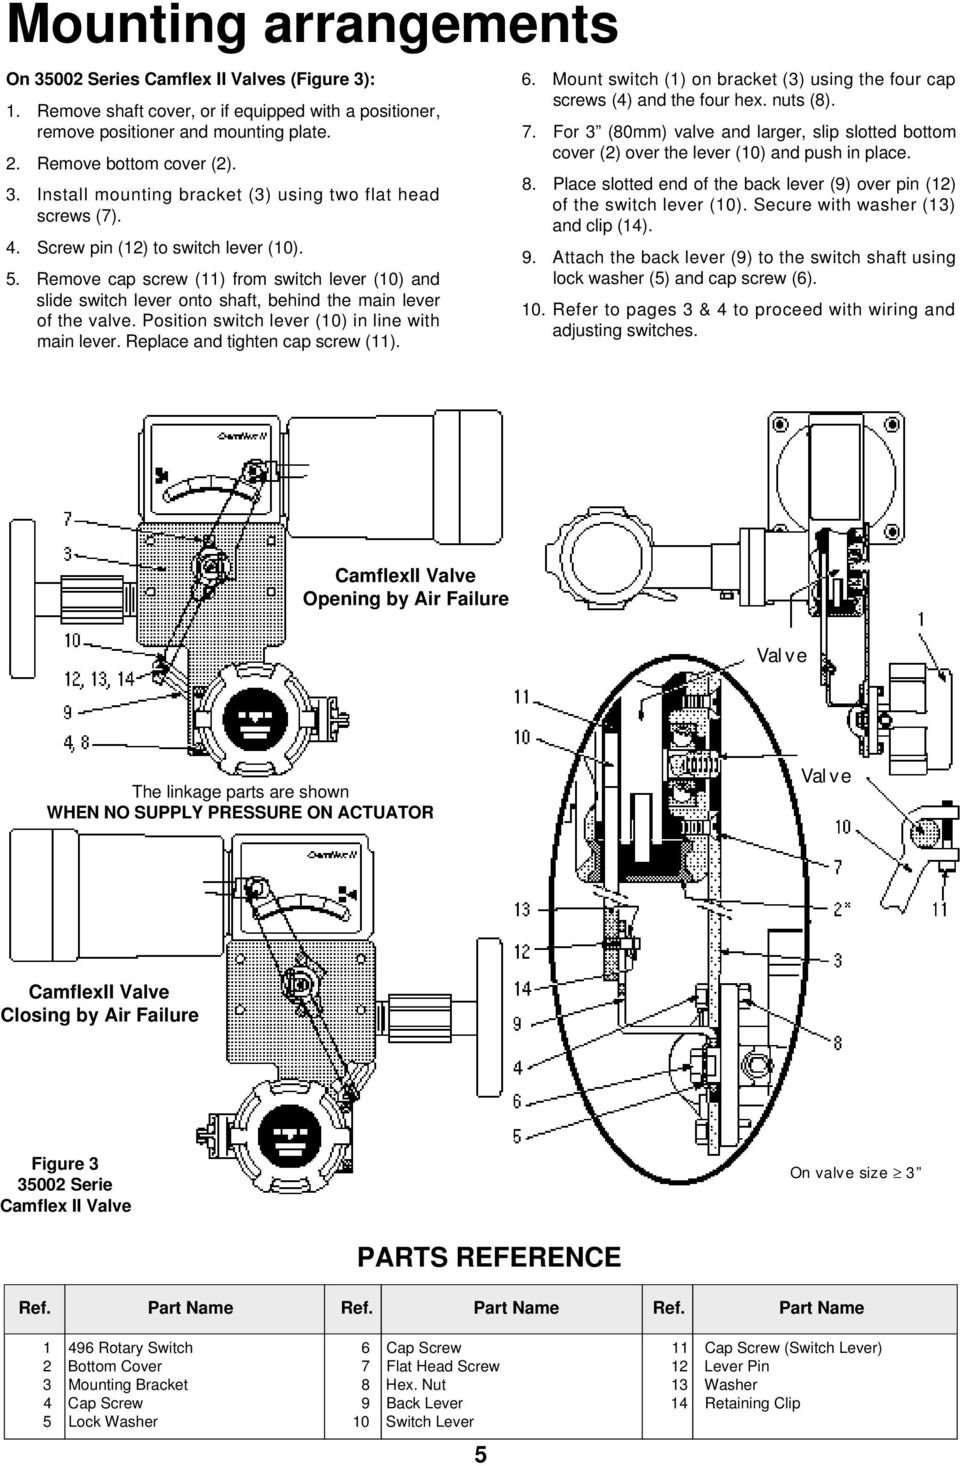 Position switch lever (10) in line with main lever. Replace and tighten cap screw (11). 6. Mount switch (1) on bracket (3) using the four cap screws (4) and the four hex. nuts (8). 7.